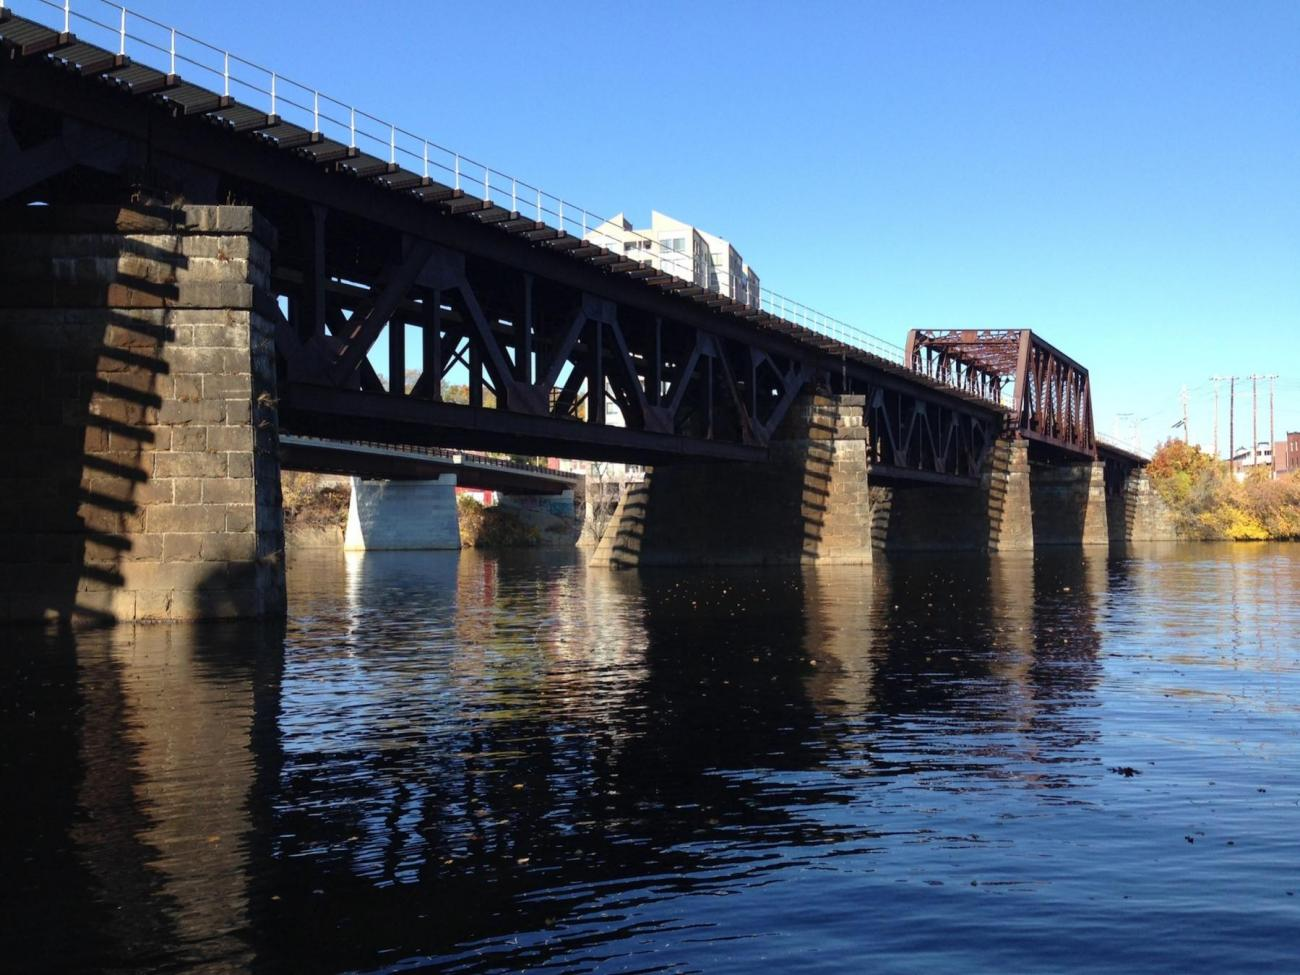 Merrimack River Bridge, viewed from below